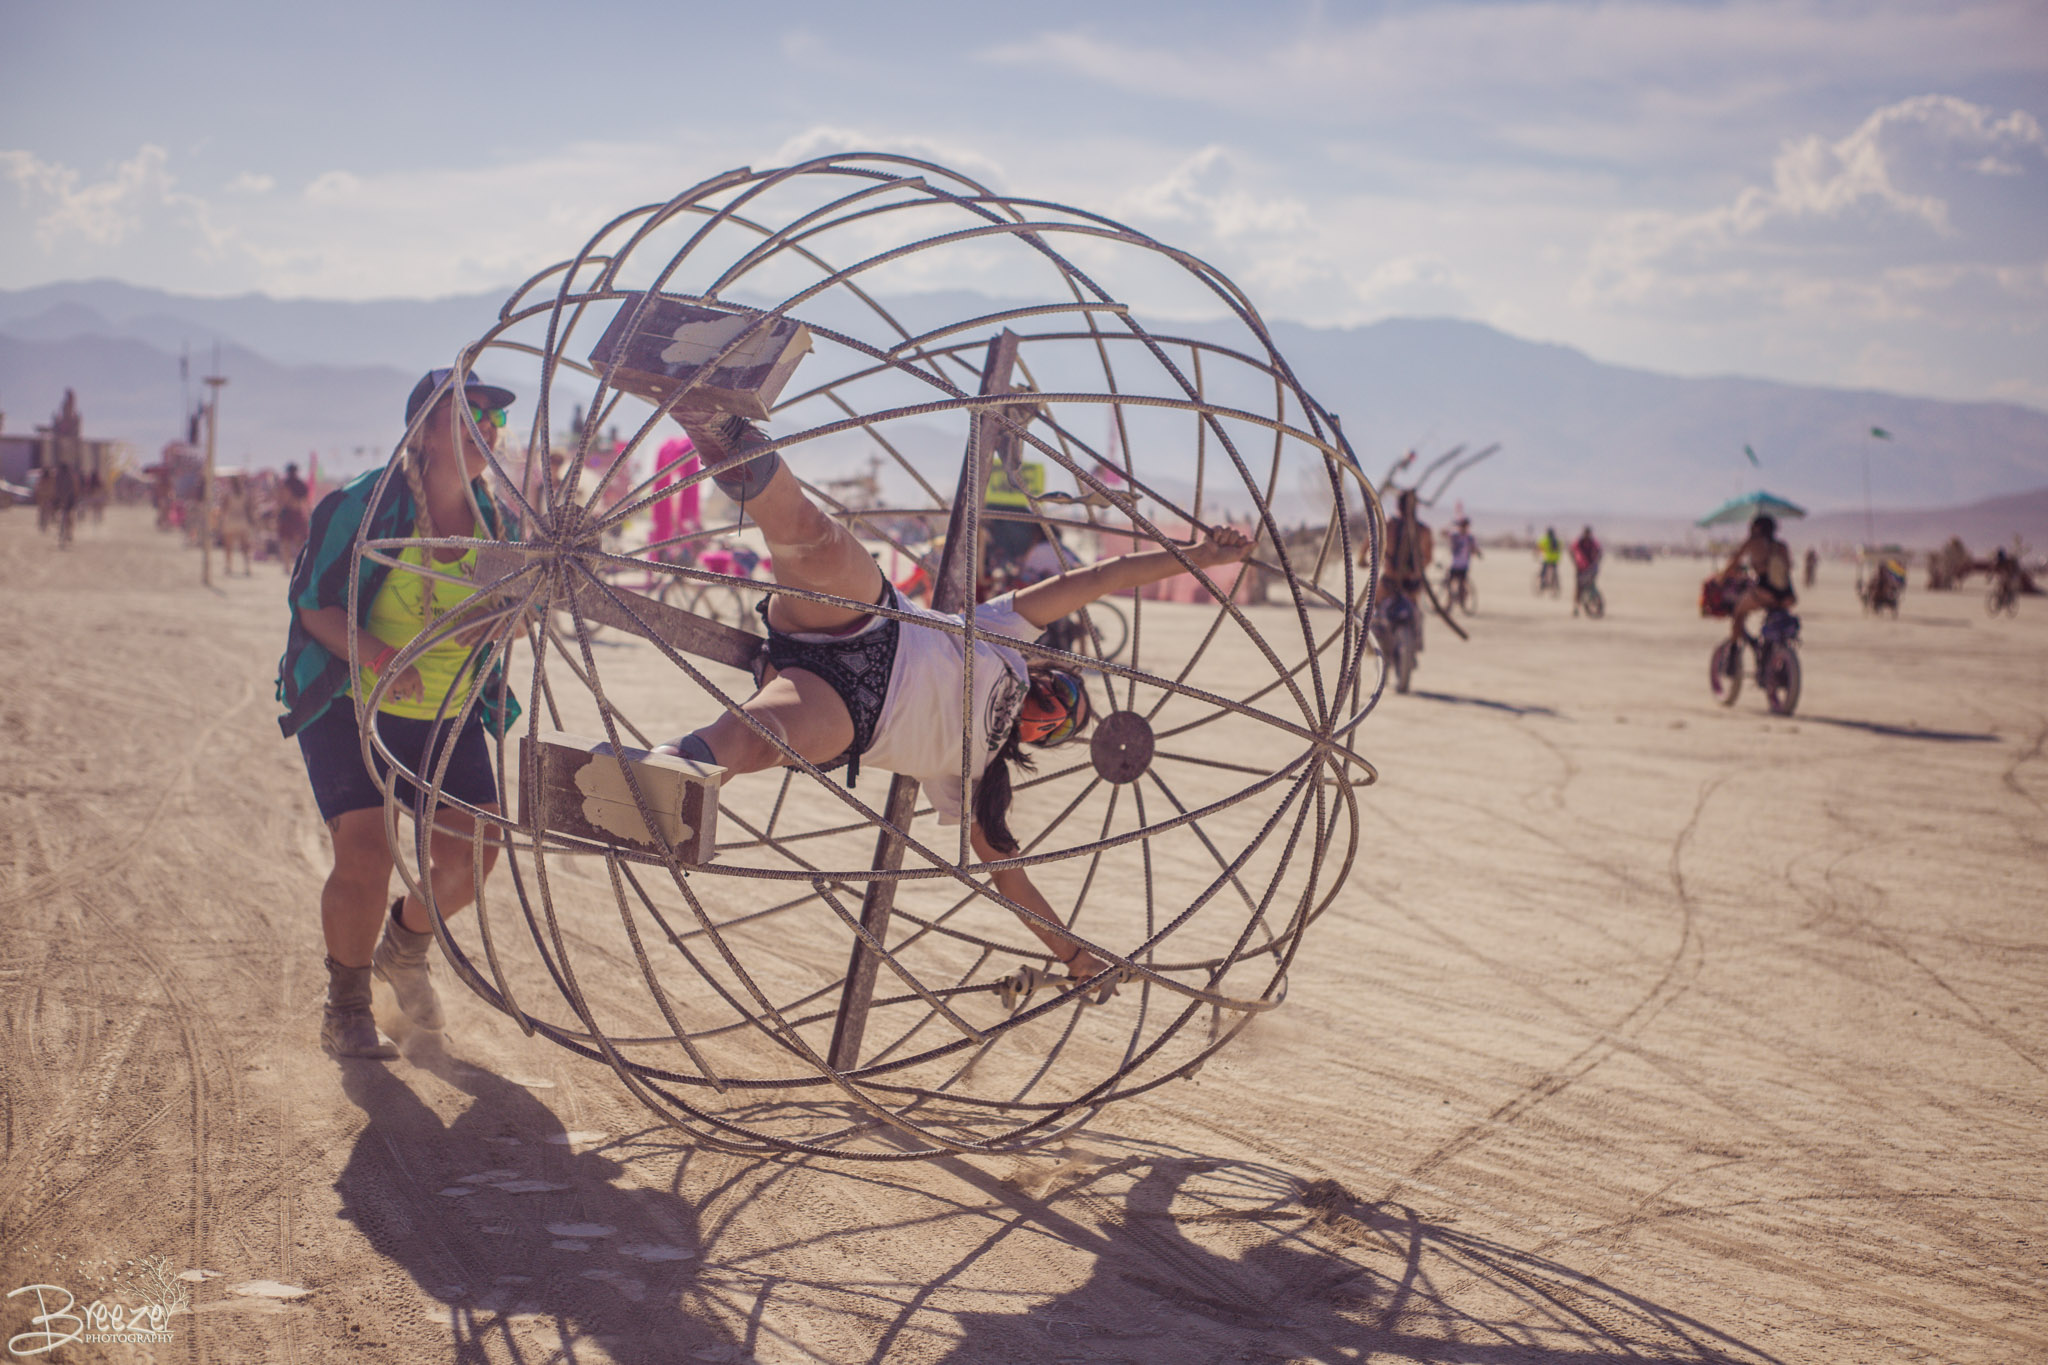 Brie'Ana Breeze Photography & Media - Burning Man 2018-3815.jpg